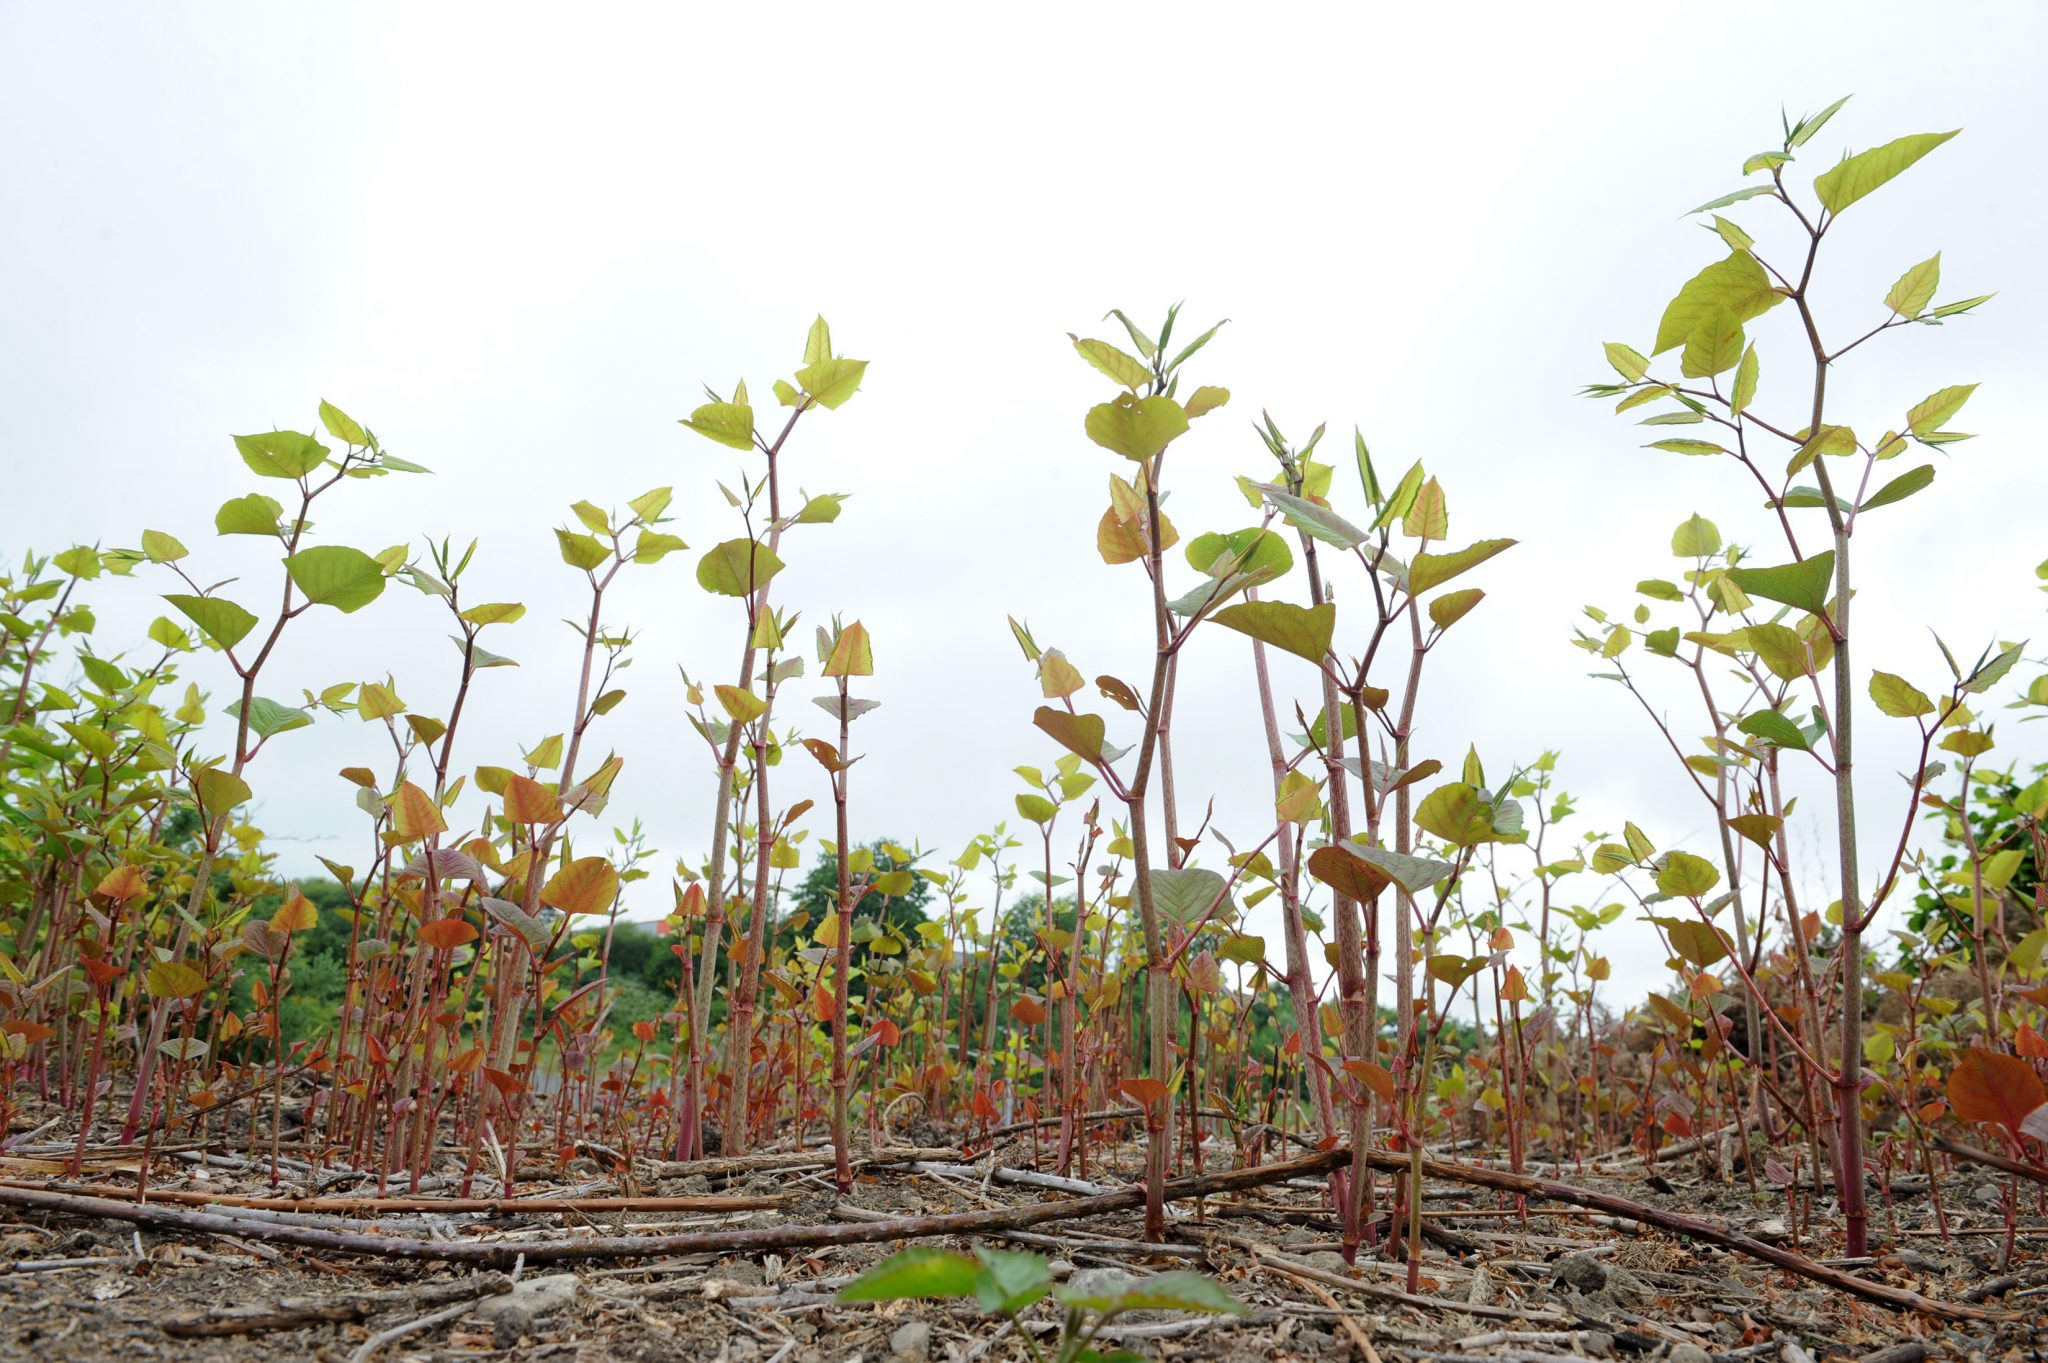 Cold snap lulls homeowners into false sense of security as emergence of Japanese knotweed is delayed